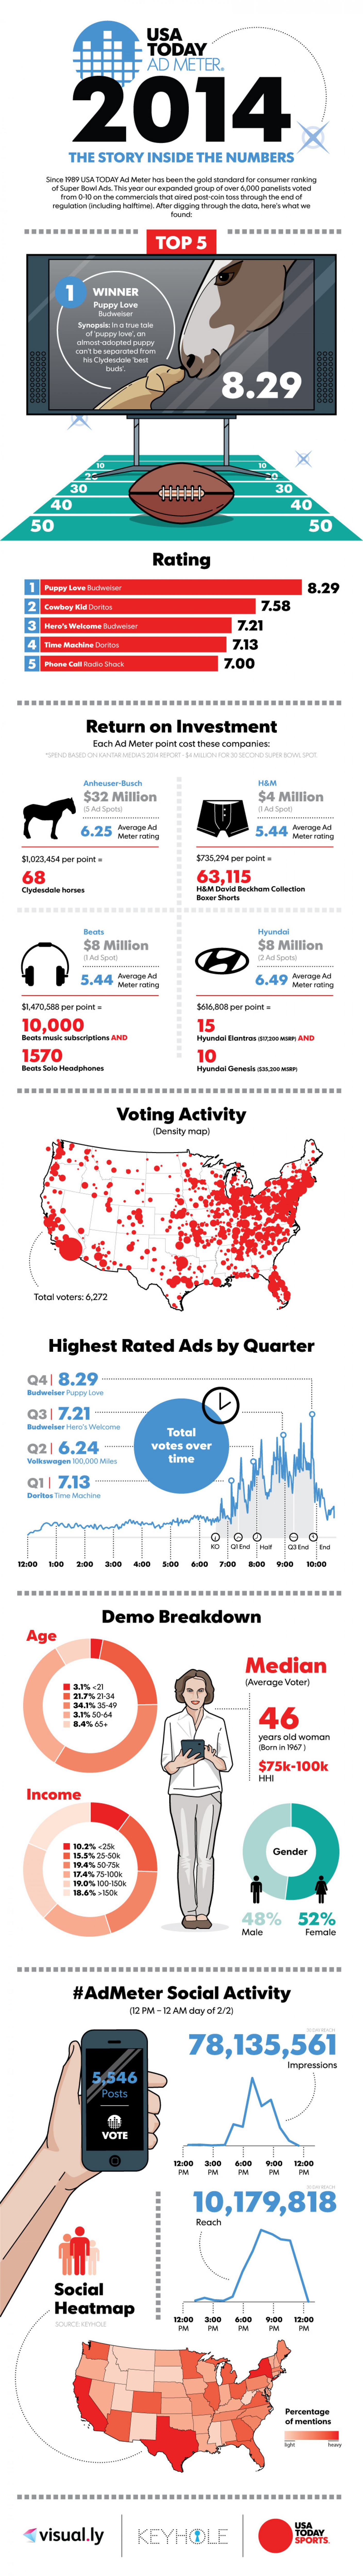 usa today stats on super bowl ads 2014